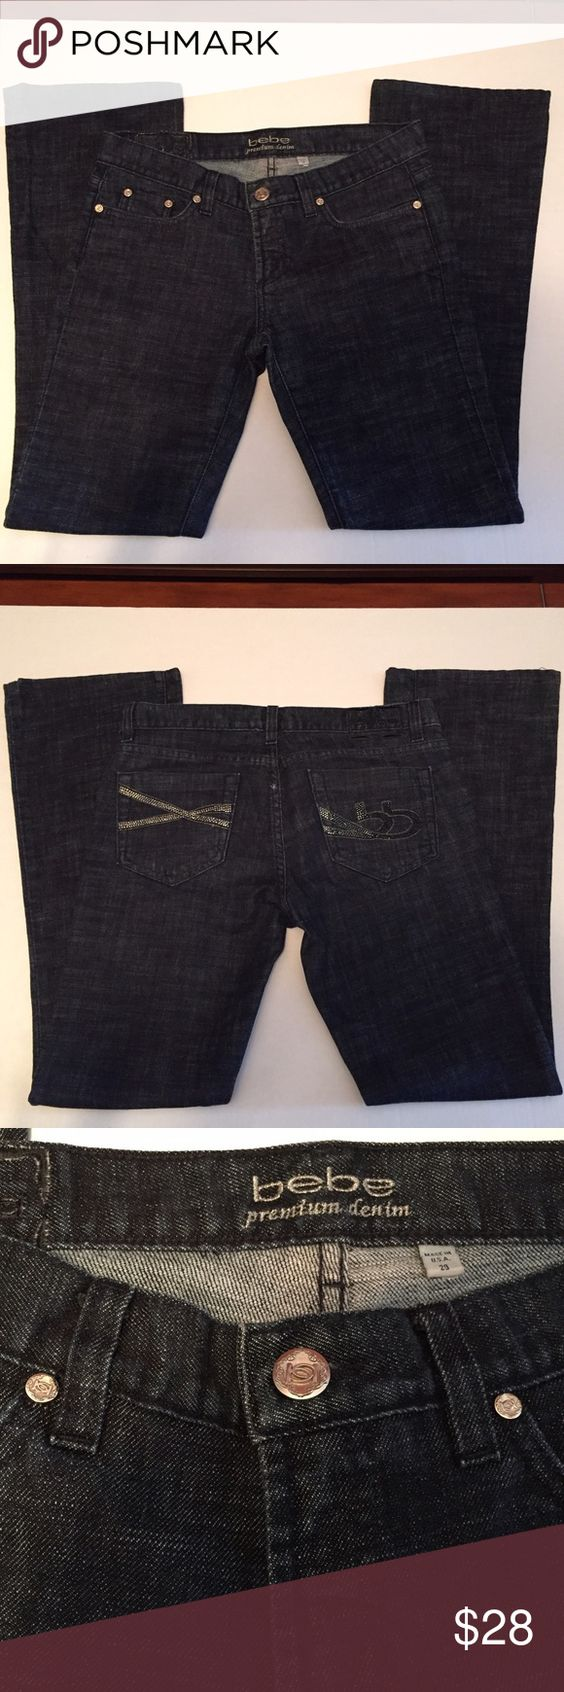 """Jeans by bebe Size 29 Bebe Premium Denim Jeans Black with  9"""" Flare Original Color Rhinestones on Left Back Pocket & Original & Black Rhinestones on Right Back Pocket Size 29W 31L 98% Cotton 2% Spandex Very Good Condition! bebe Jeans"""